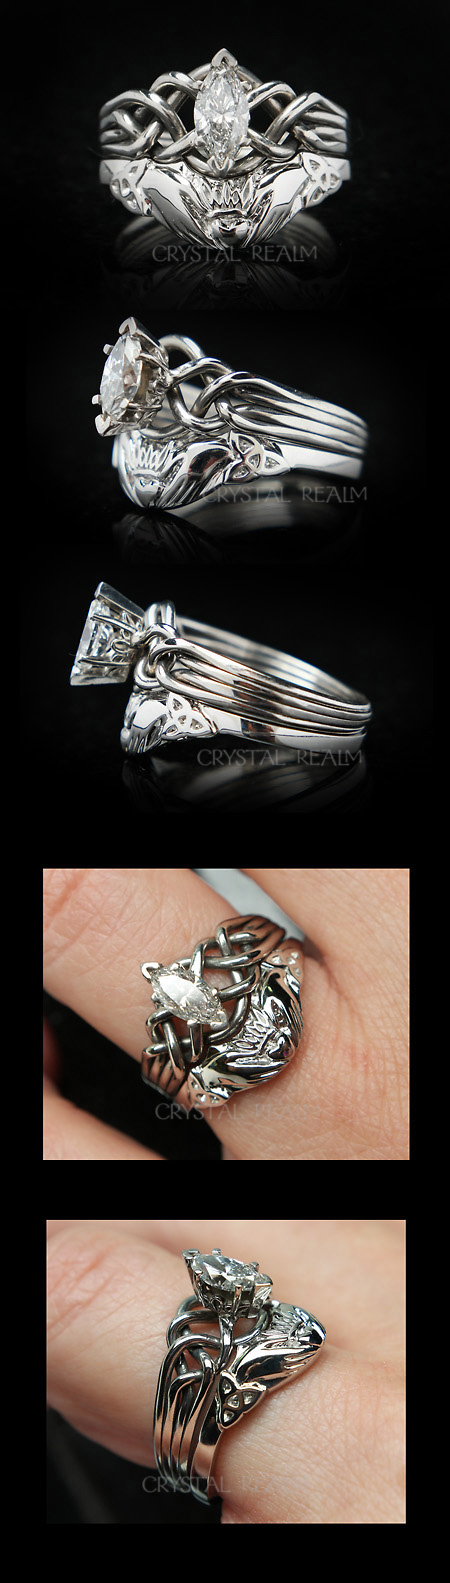 Marquise diamond four band puzzle ring with Celtic claddagh wedding ring